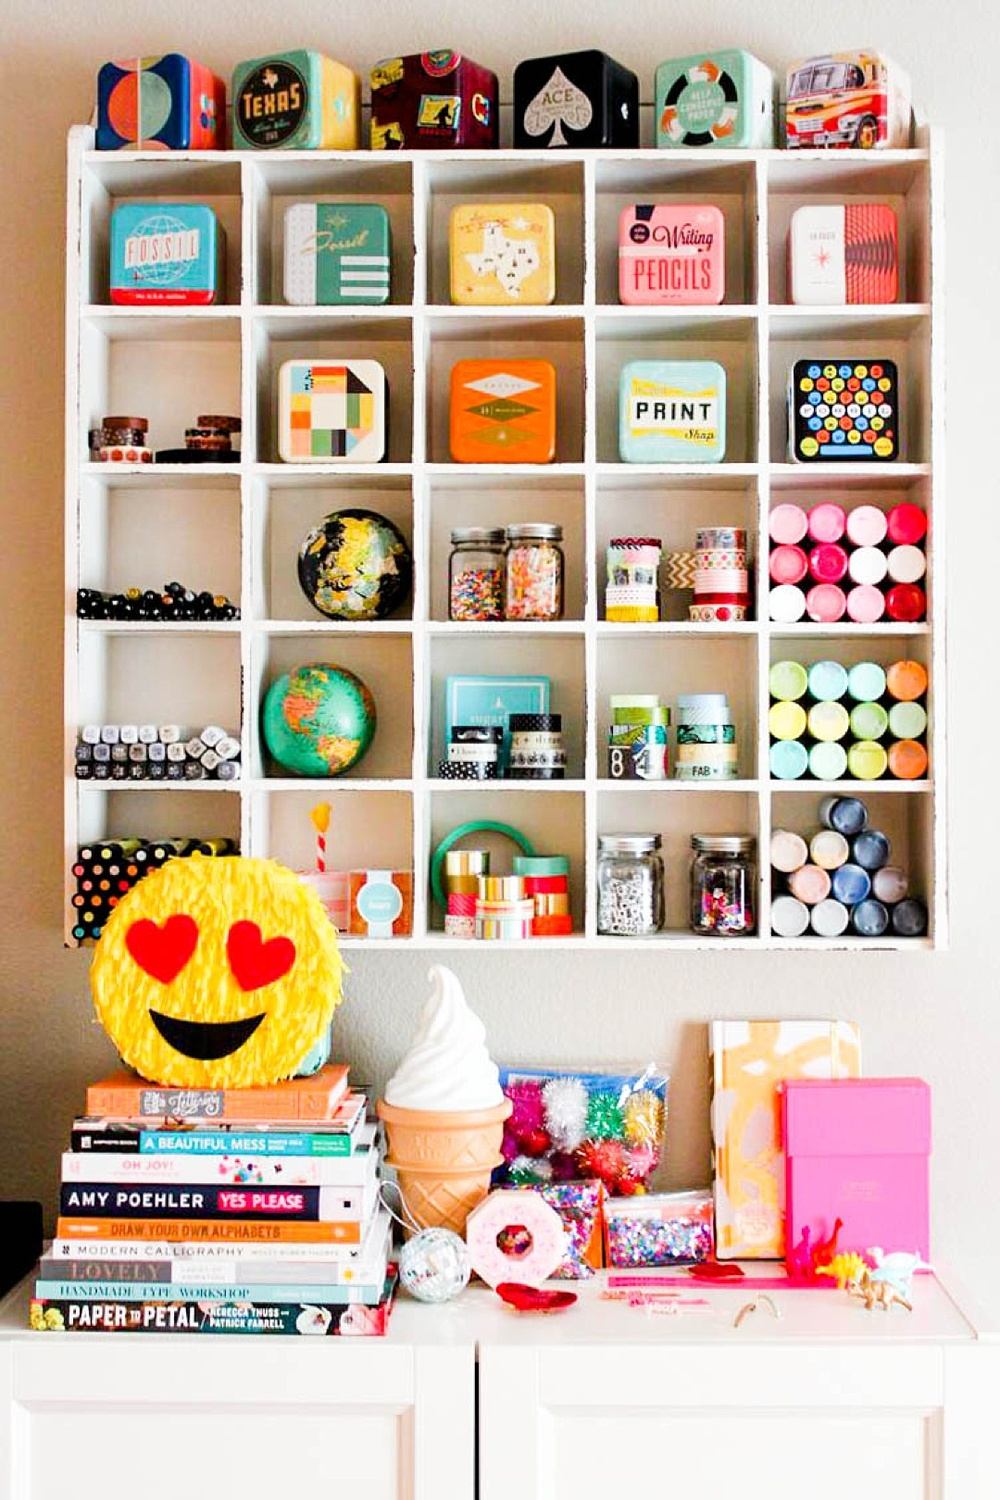 Whimsical Workspaces of creative entrepreneurs to inspire!